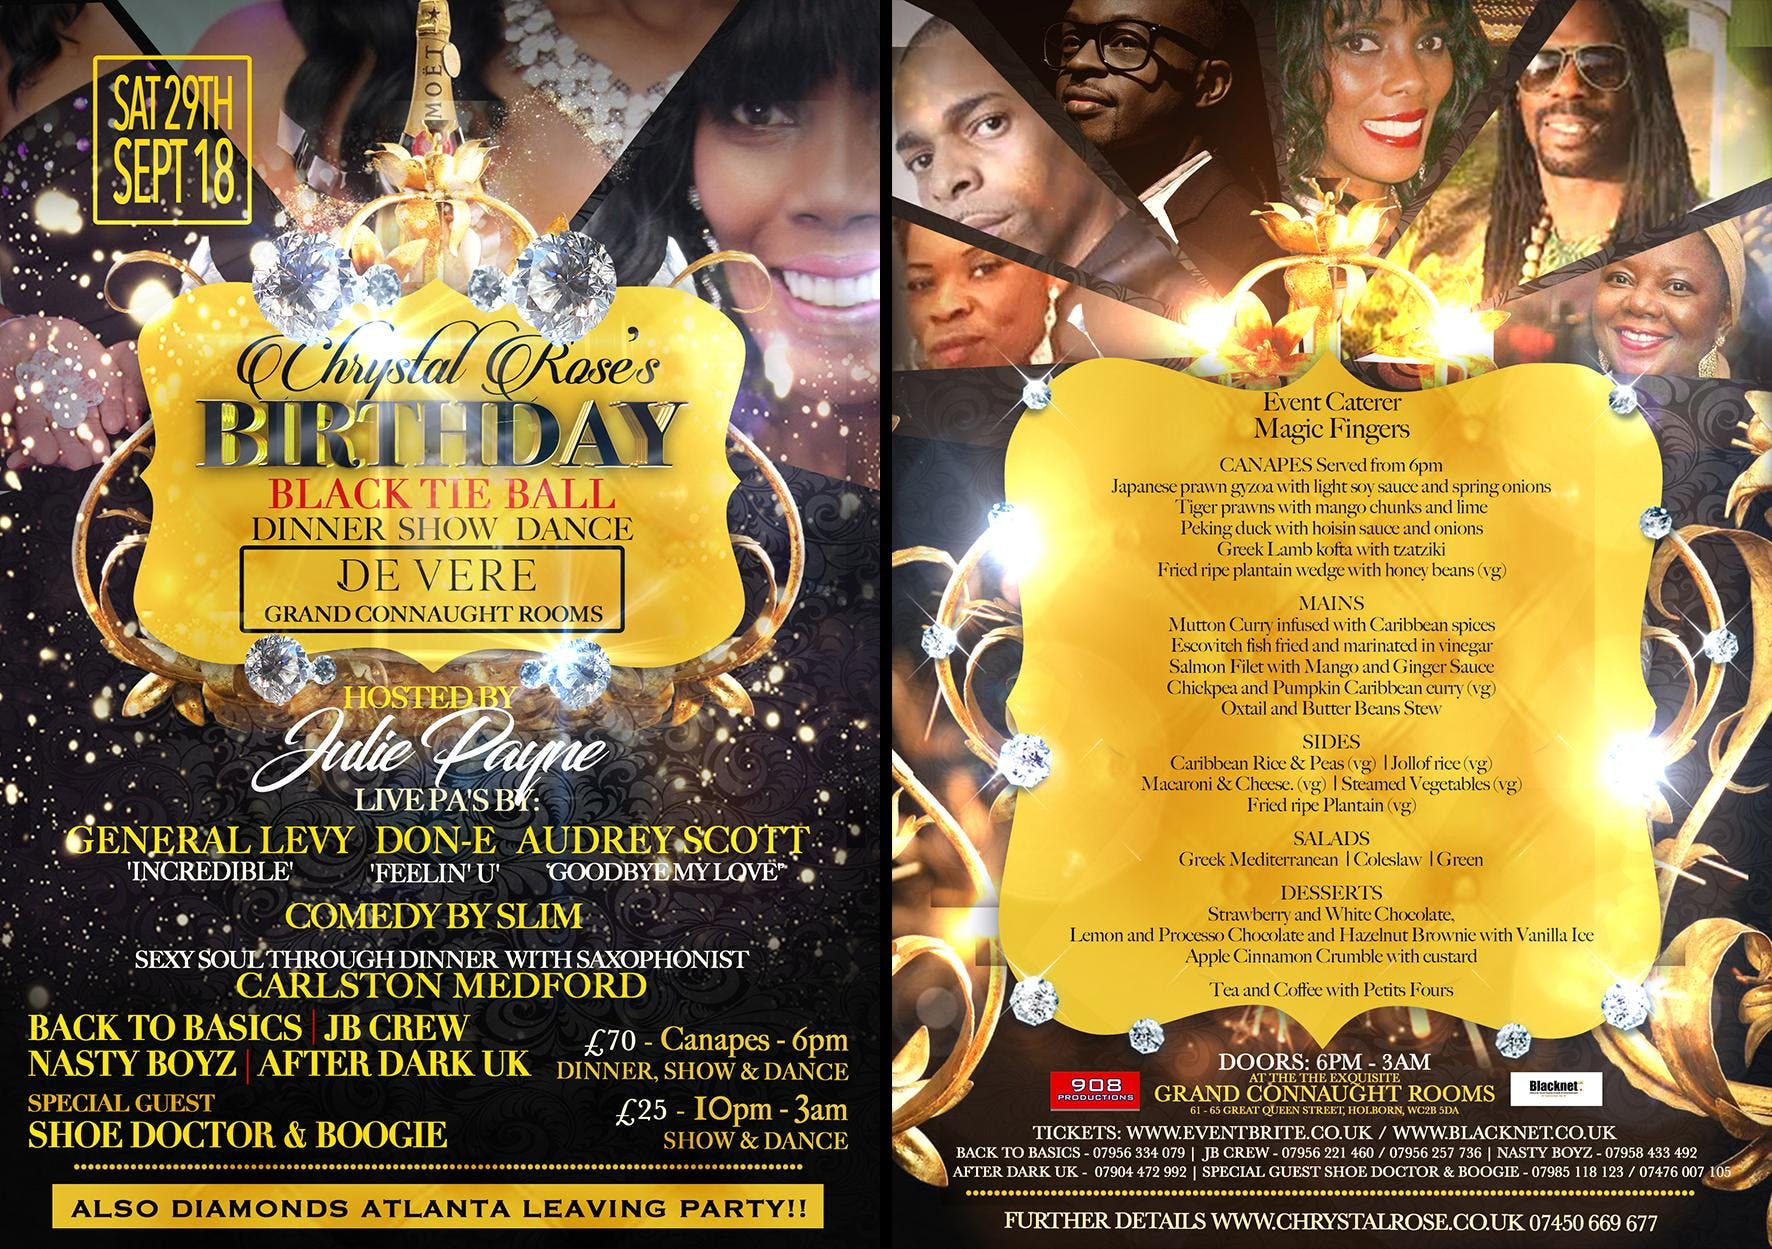 Chrystal Rose's Black Tie Birthday & Atlanta